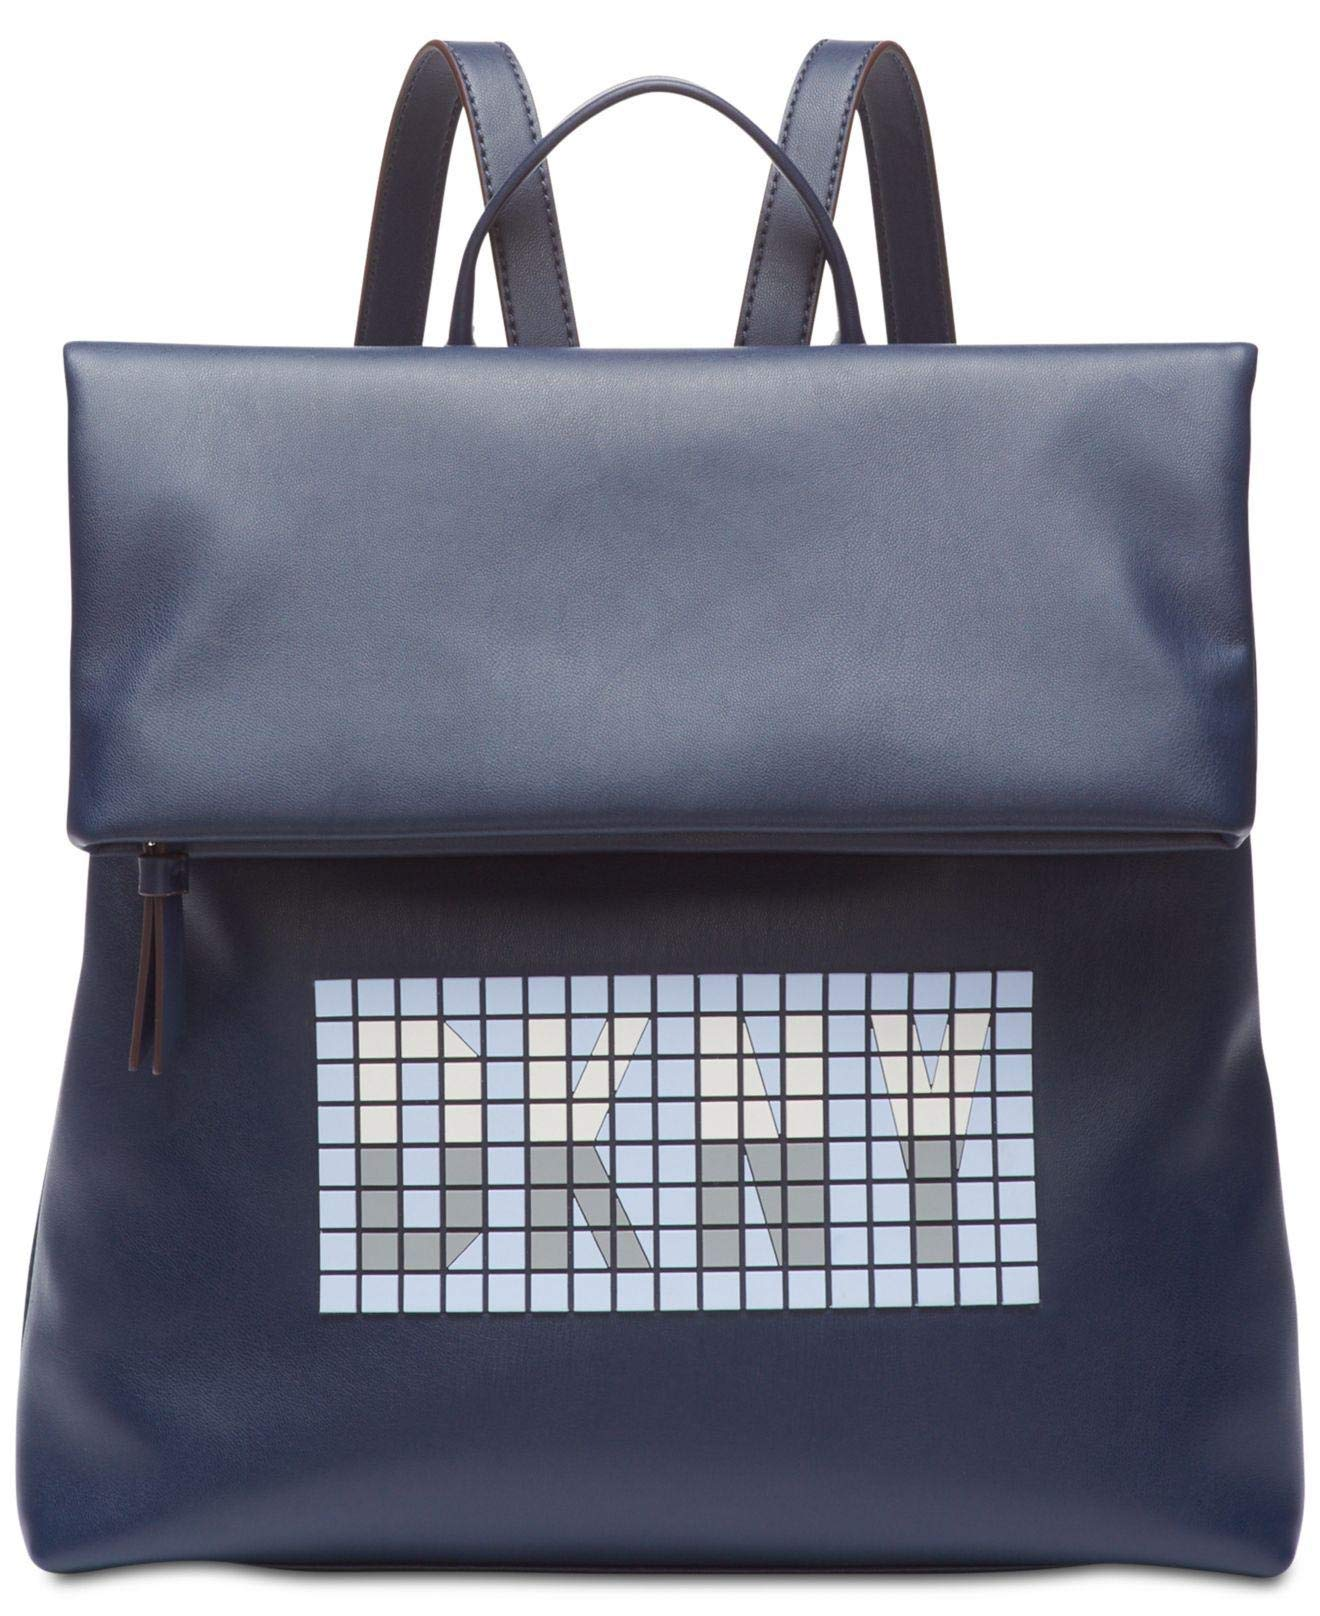 DKNY Tilly Tile Small Backpack Navy (Blue) by DKNY